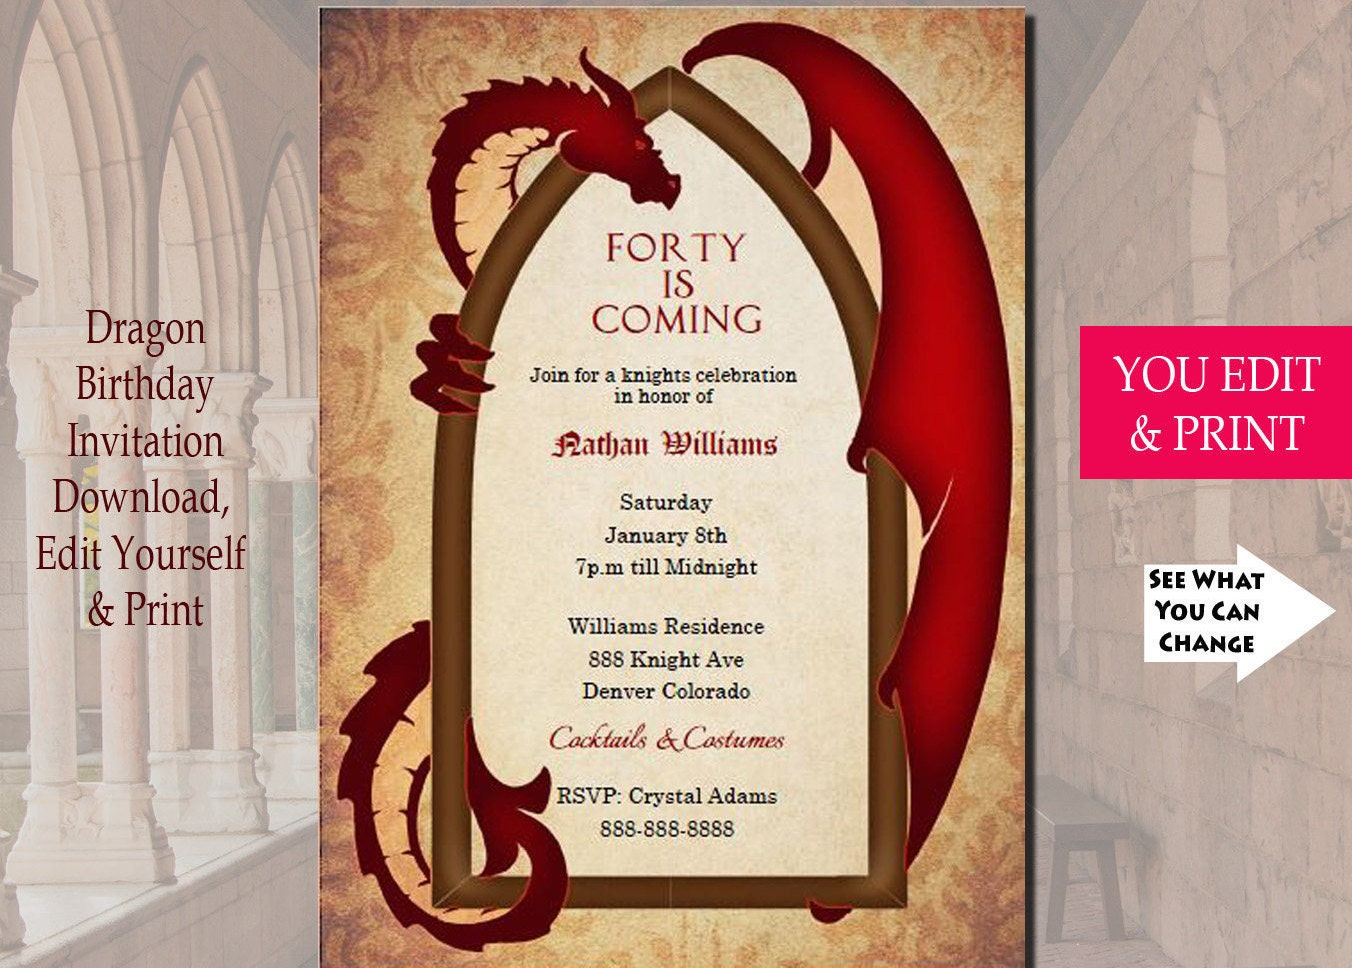 Game of thrones inspired dragon invitation dragon invitation for Game of thrones birthday party